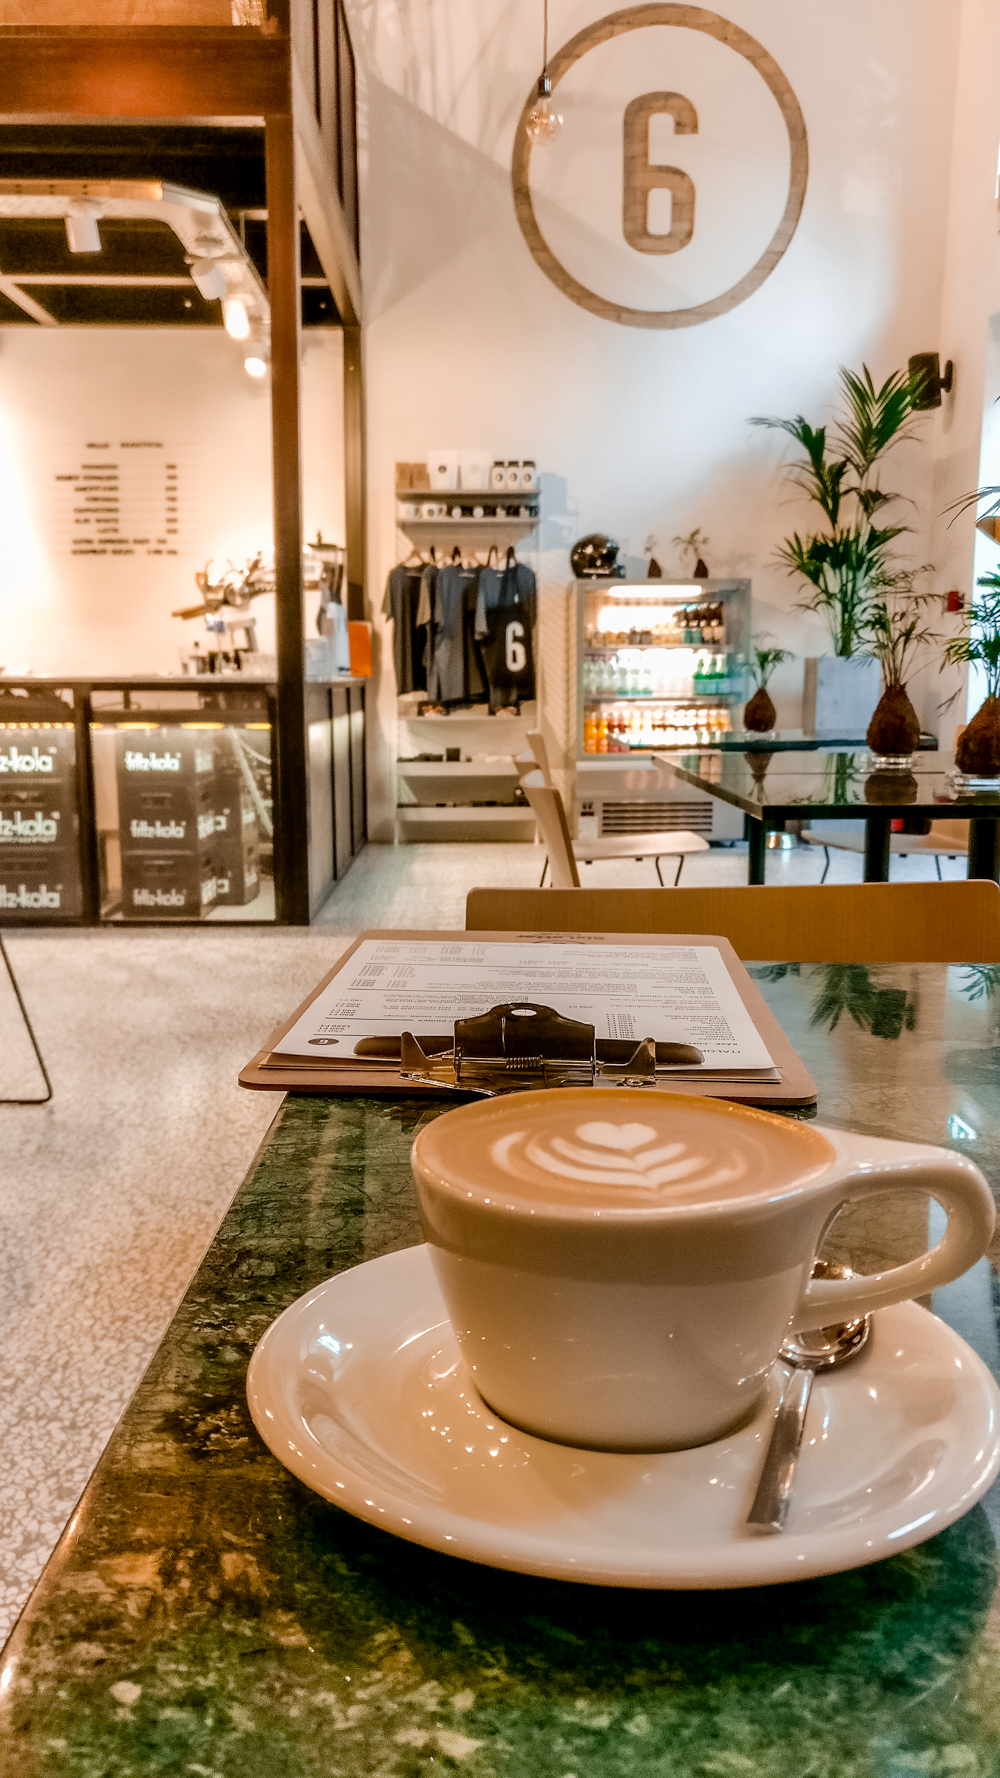 Flat white at SixLetter Coffee Co. - 10 must-visit stylish specialty coffee shops in Budapest, Hungary   Aliz's Wonderland